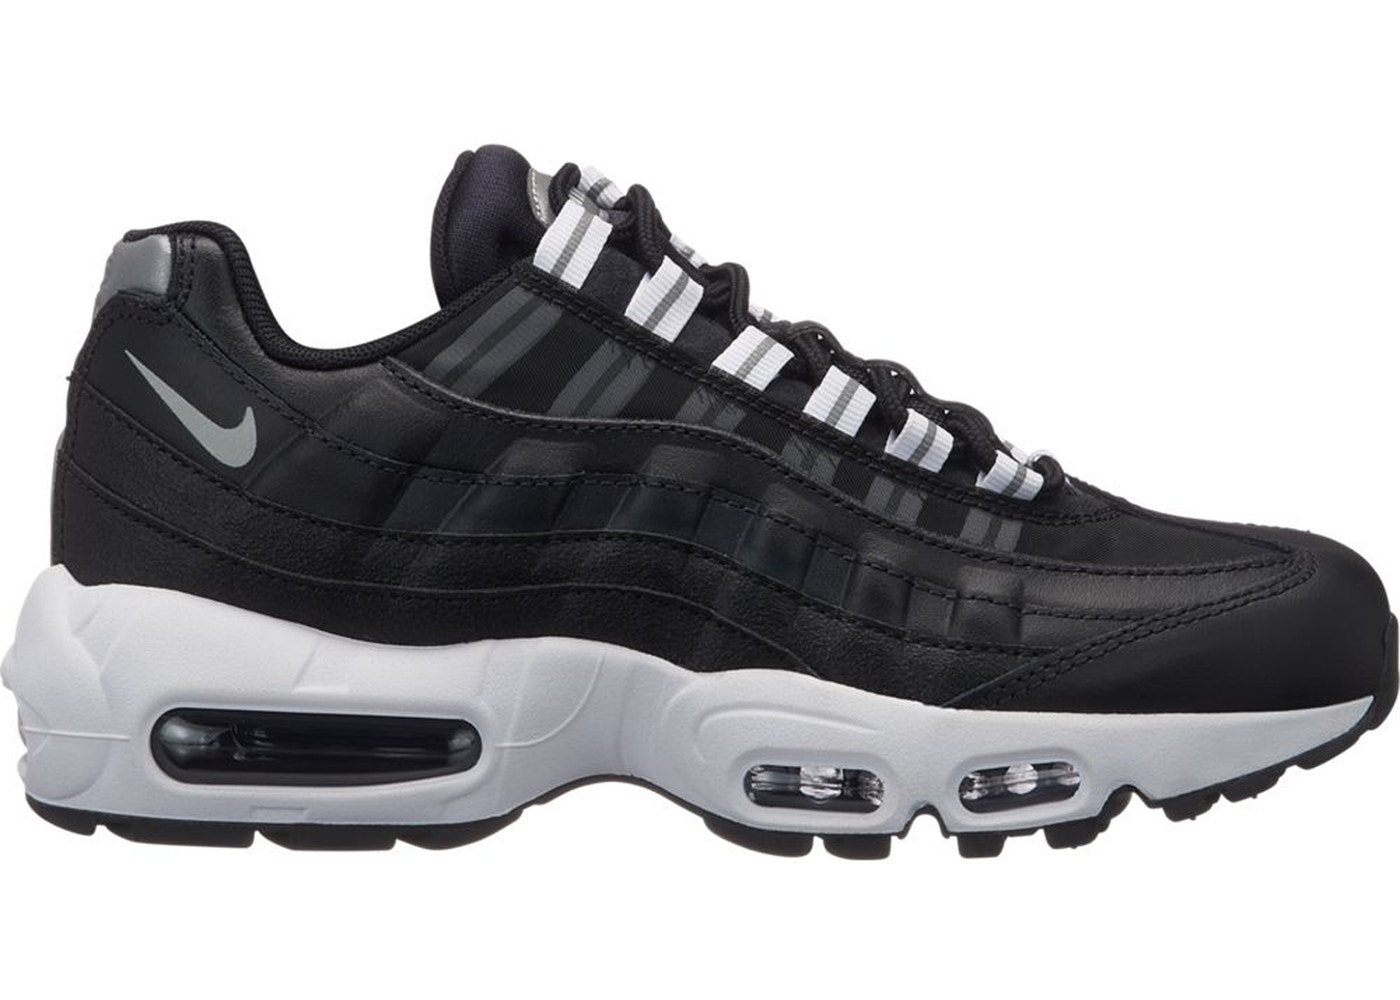 finest selection 48833 d10e2 Nike Air Max 95 Shoes - Price Premium